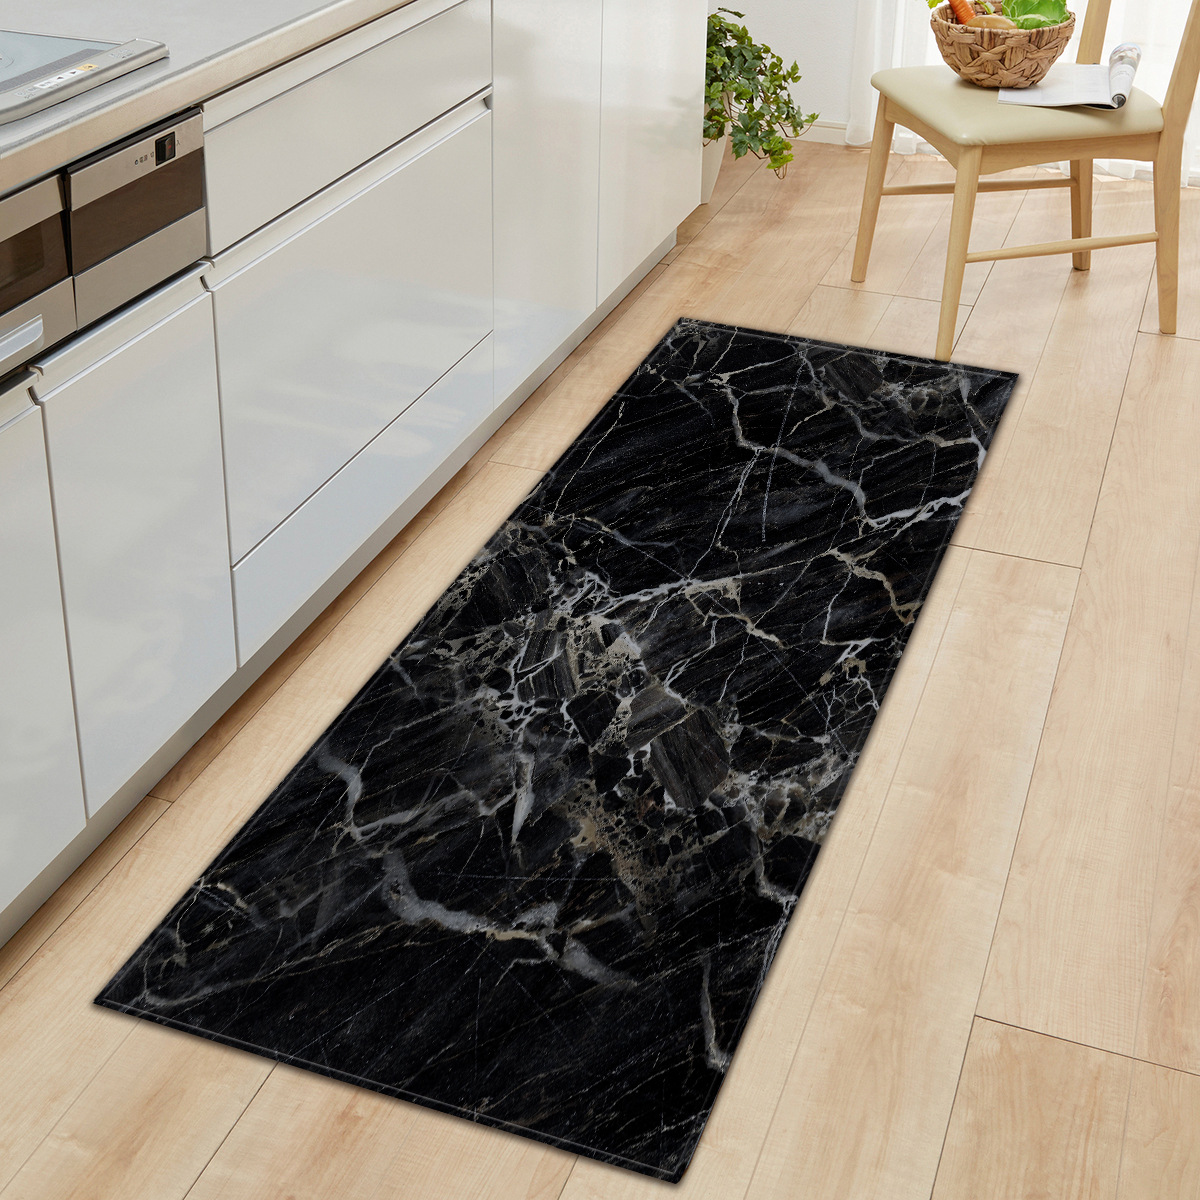 1 PC Anti-Slip Kitchen Carpet Floor Mats Carpets for Living Room Bathroom Mat Rugs Black White Marble Printed Entrance Doormat